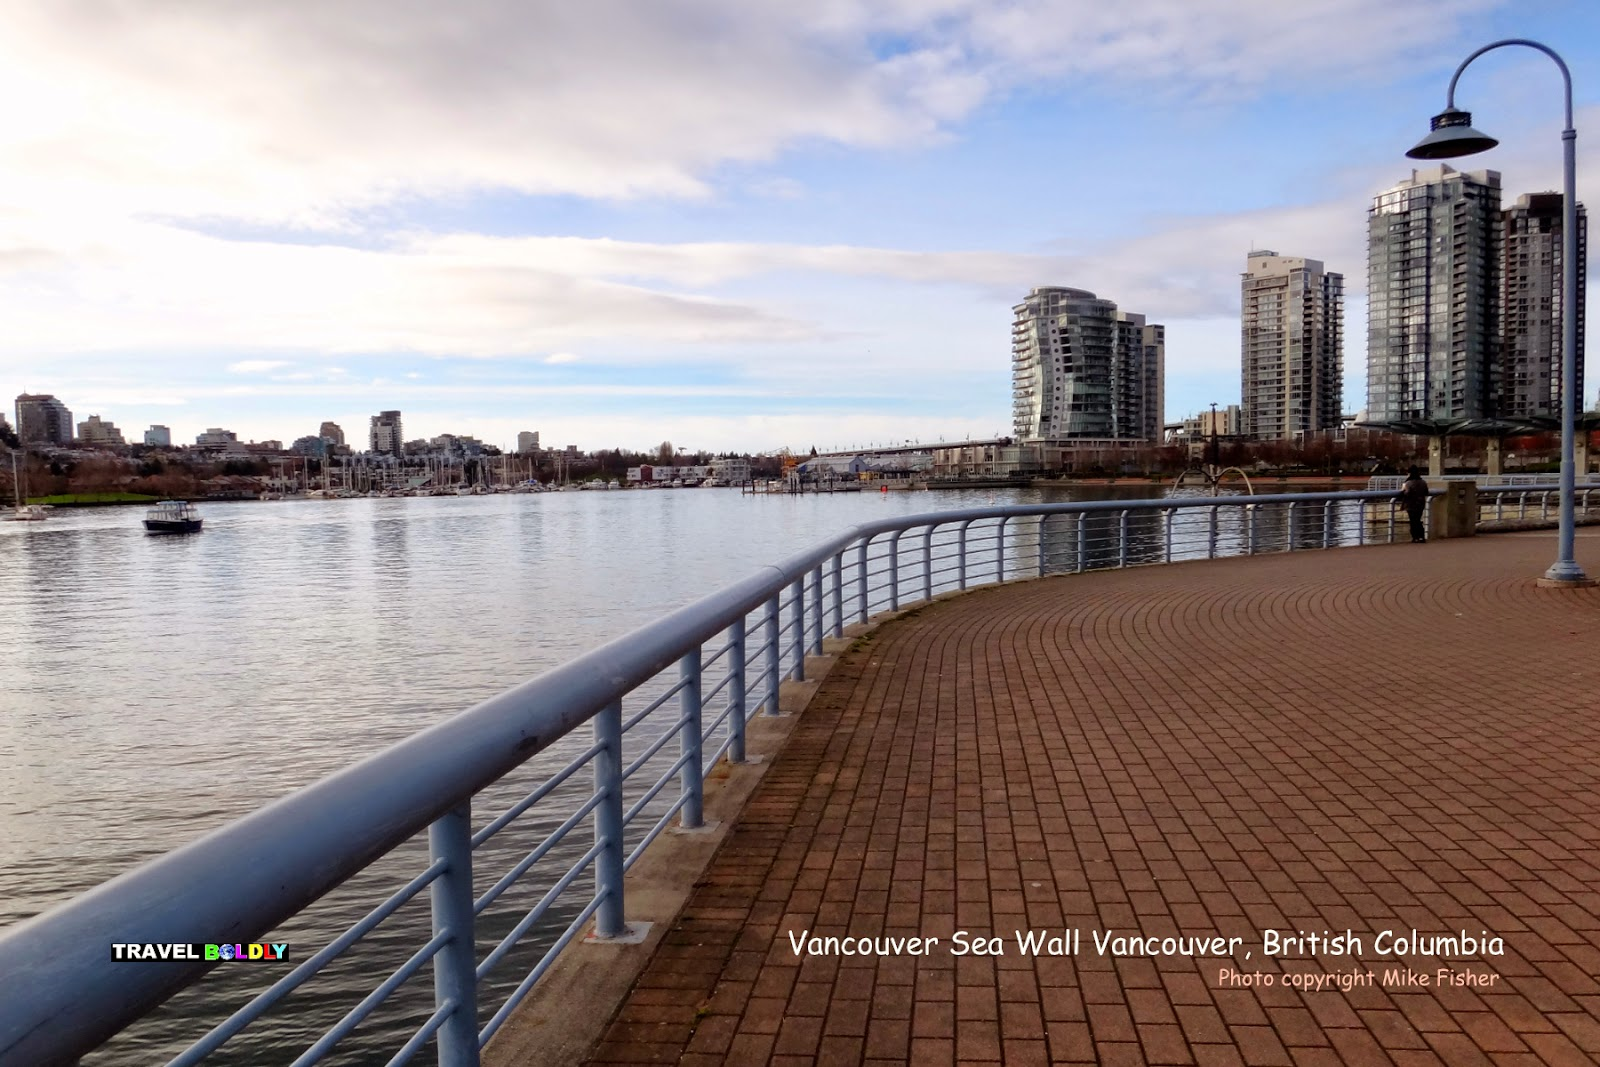 Vancouver Sea Wall Vancouver, British Columbia - Photo Mike Fisher for Travel Boldly